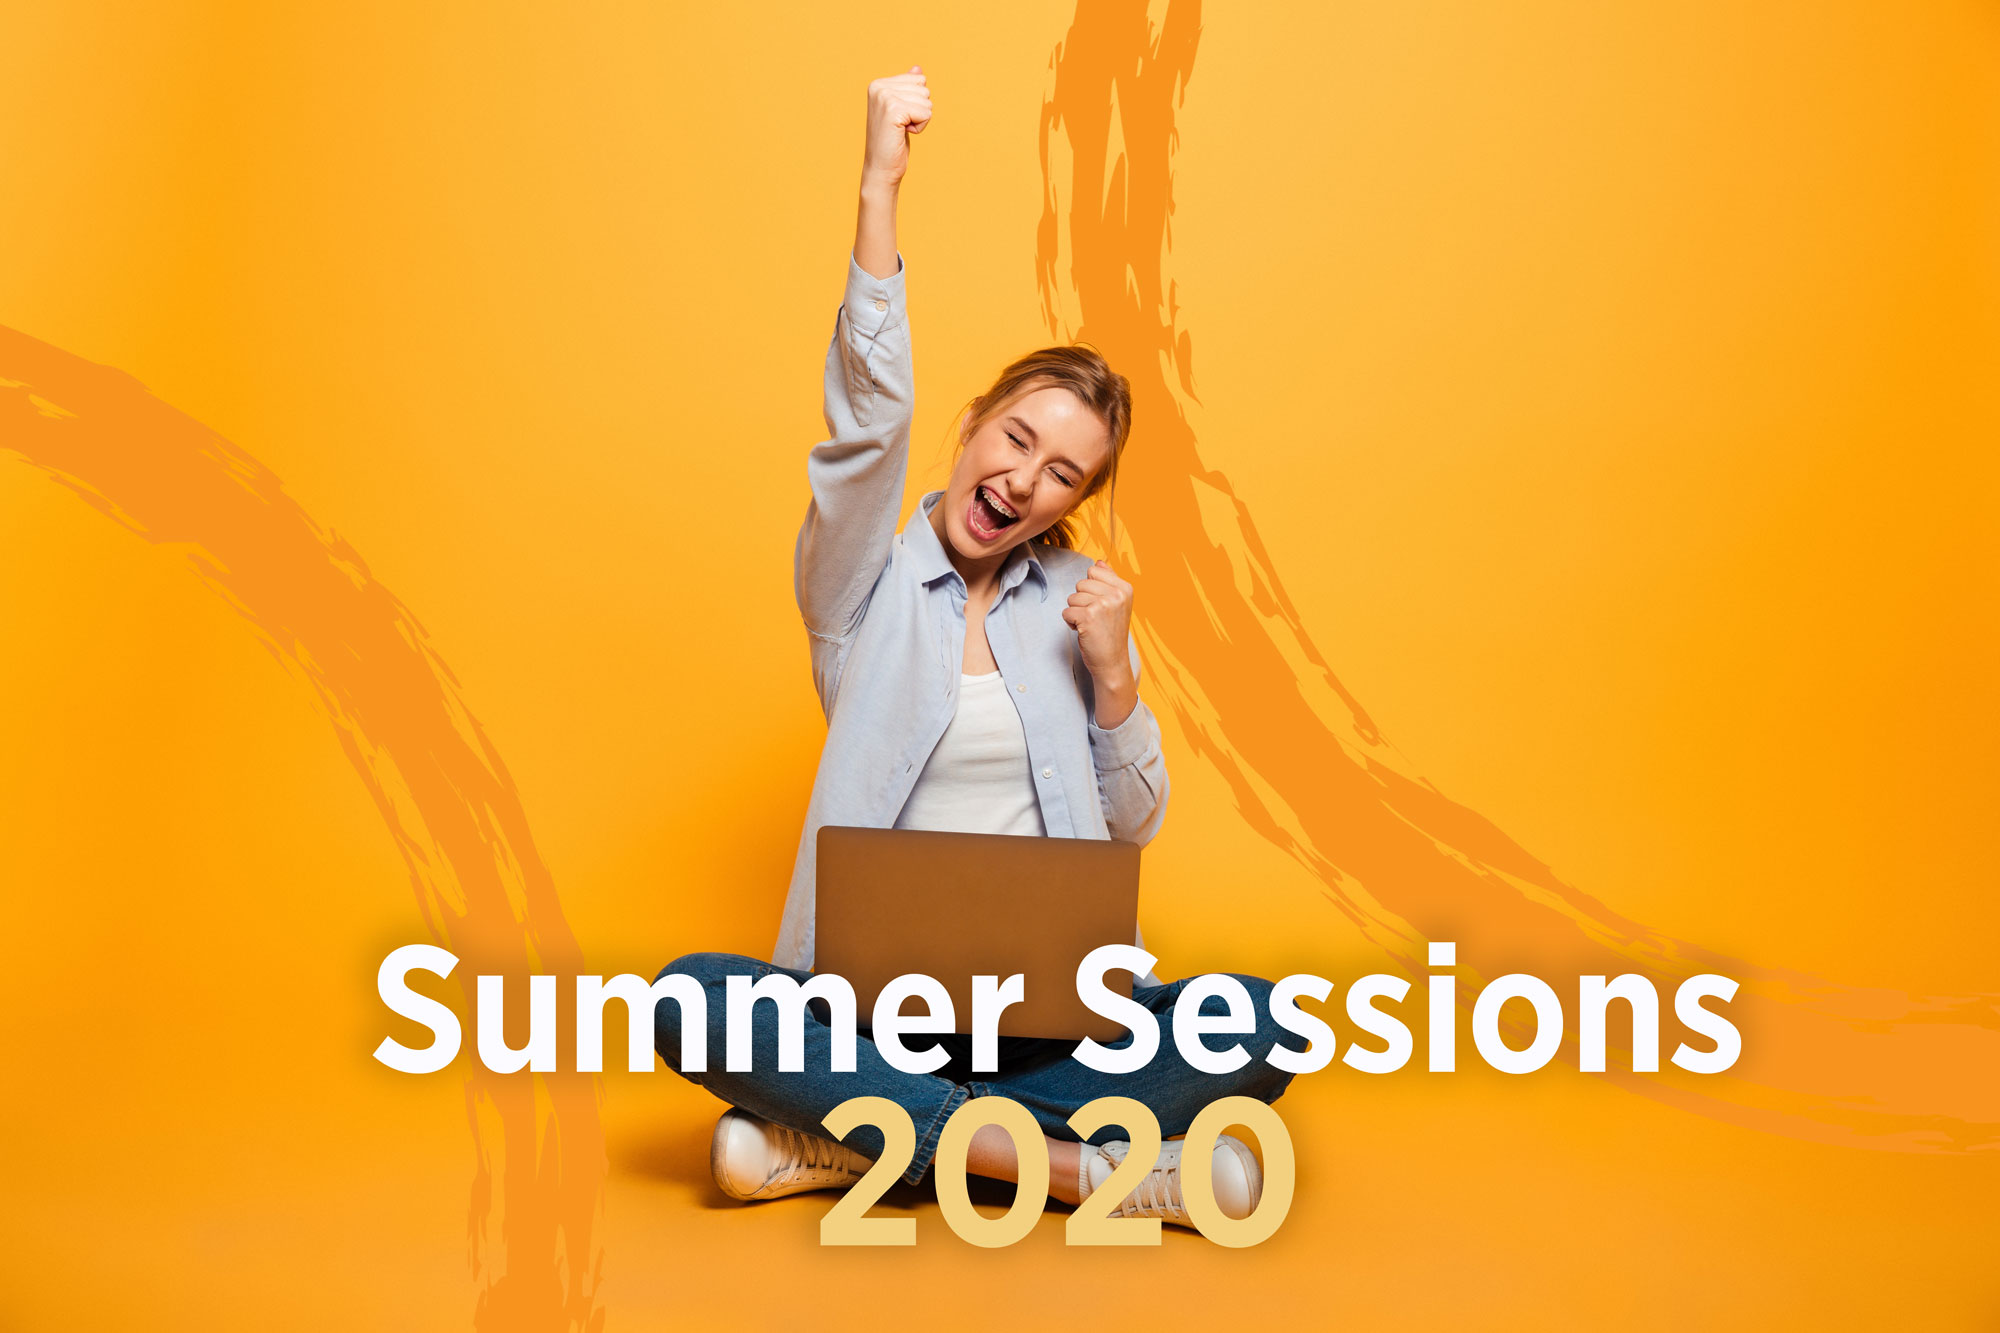 Summer Sessions 2020 with woman smiling